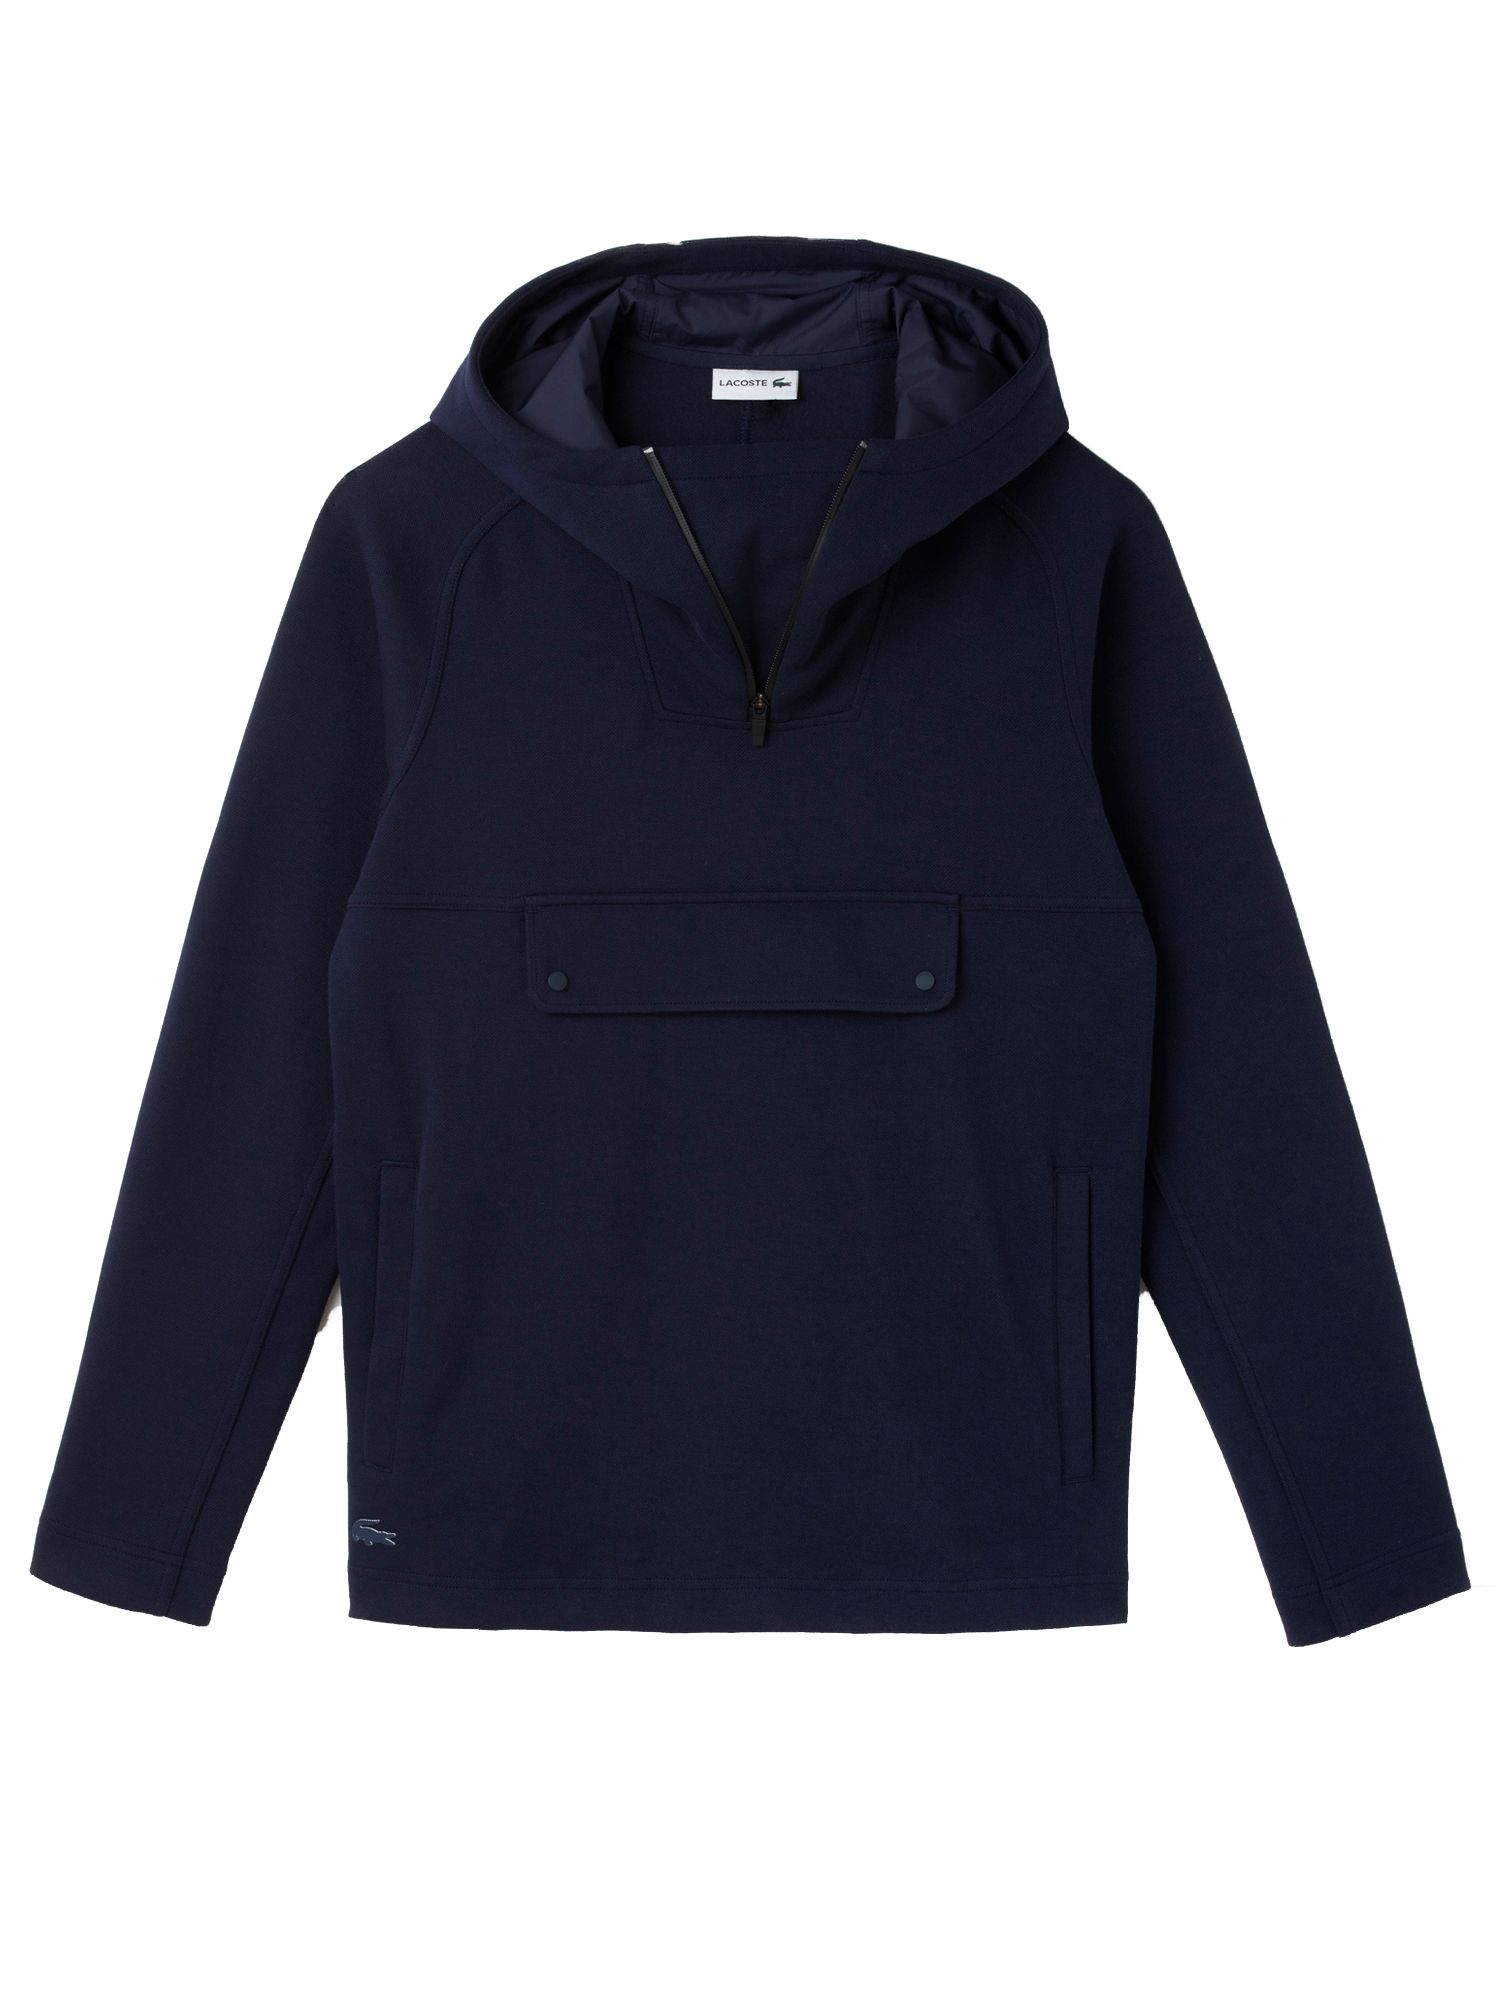 Men's Lacoste Technical Hoodie, Silver Chine